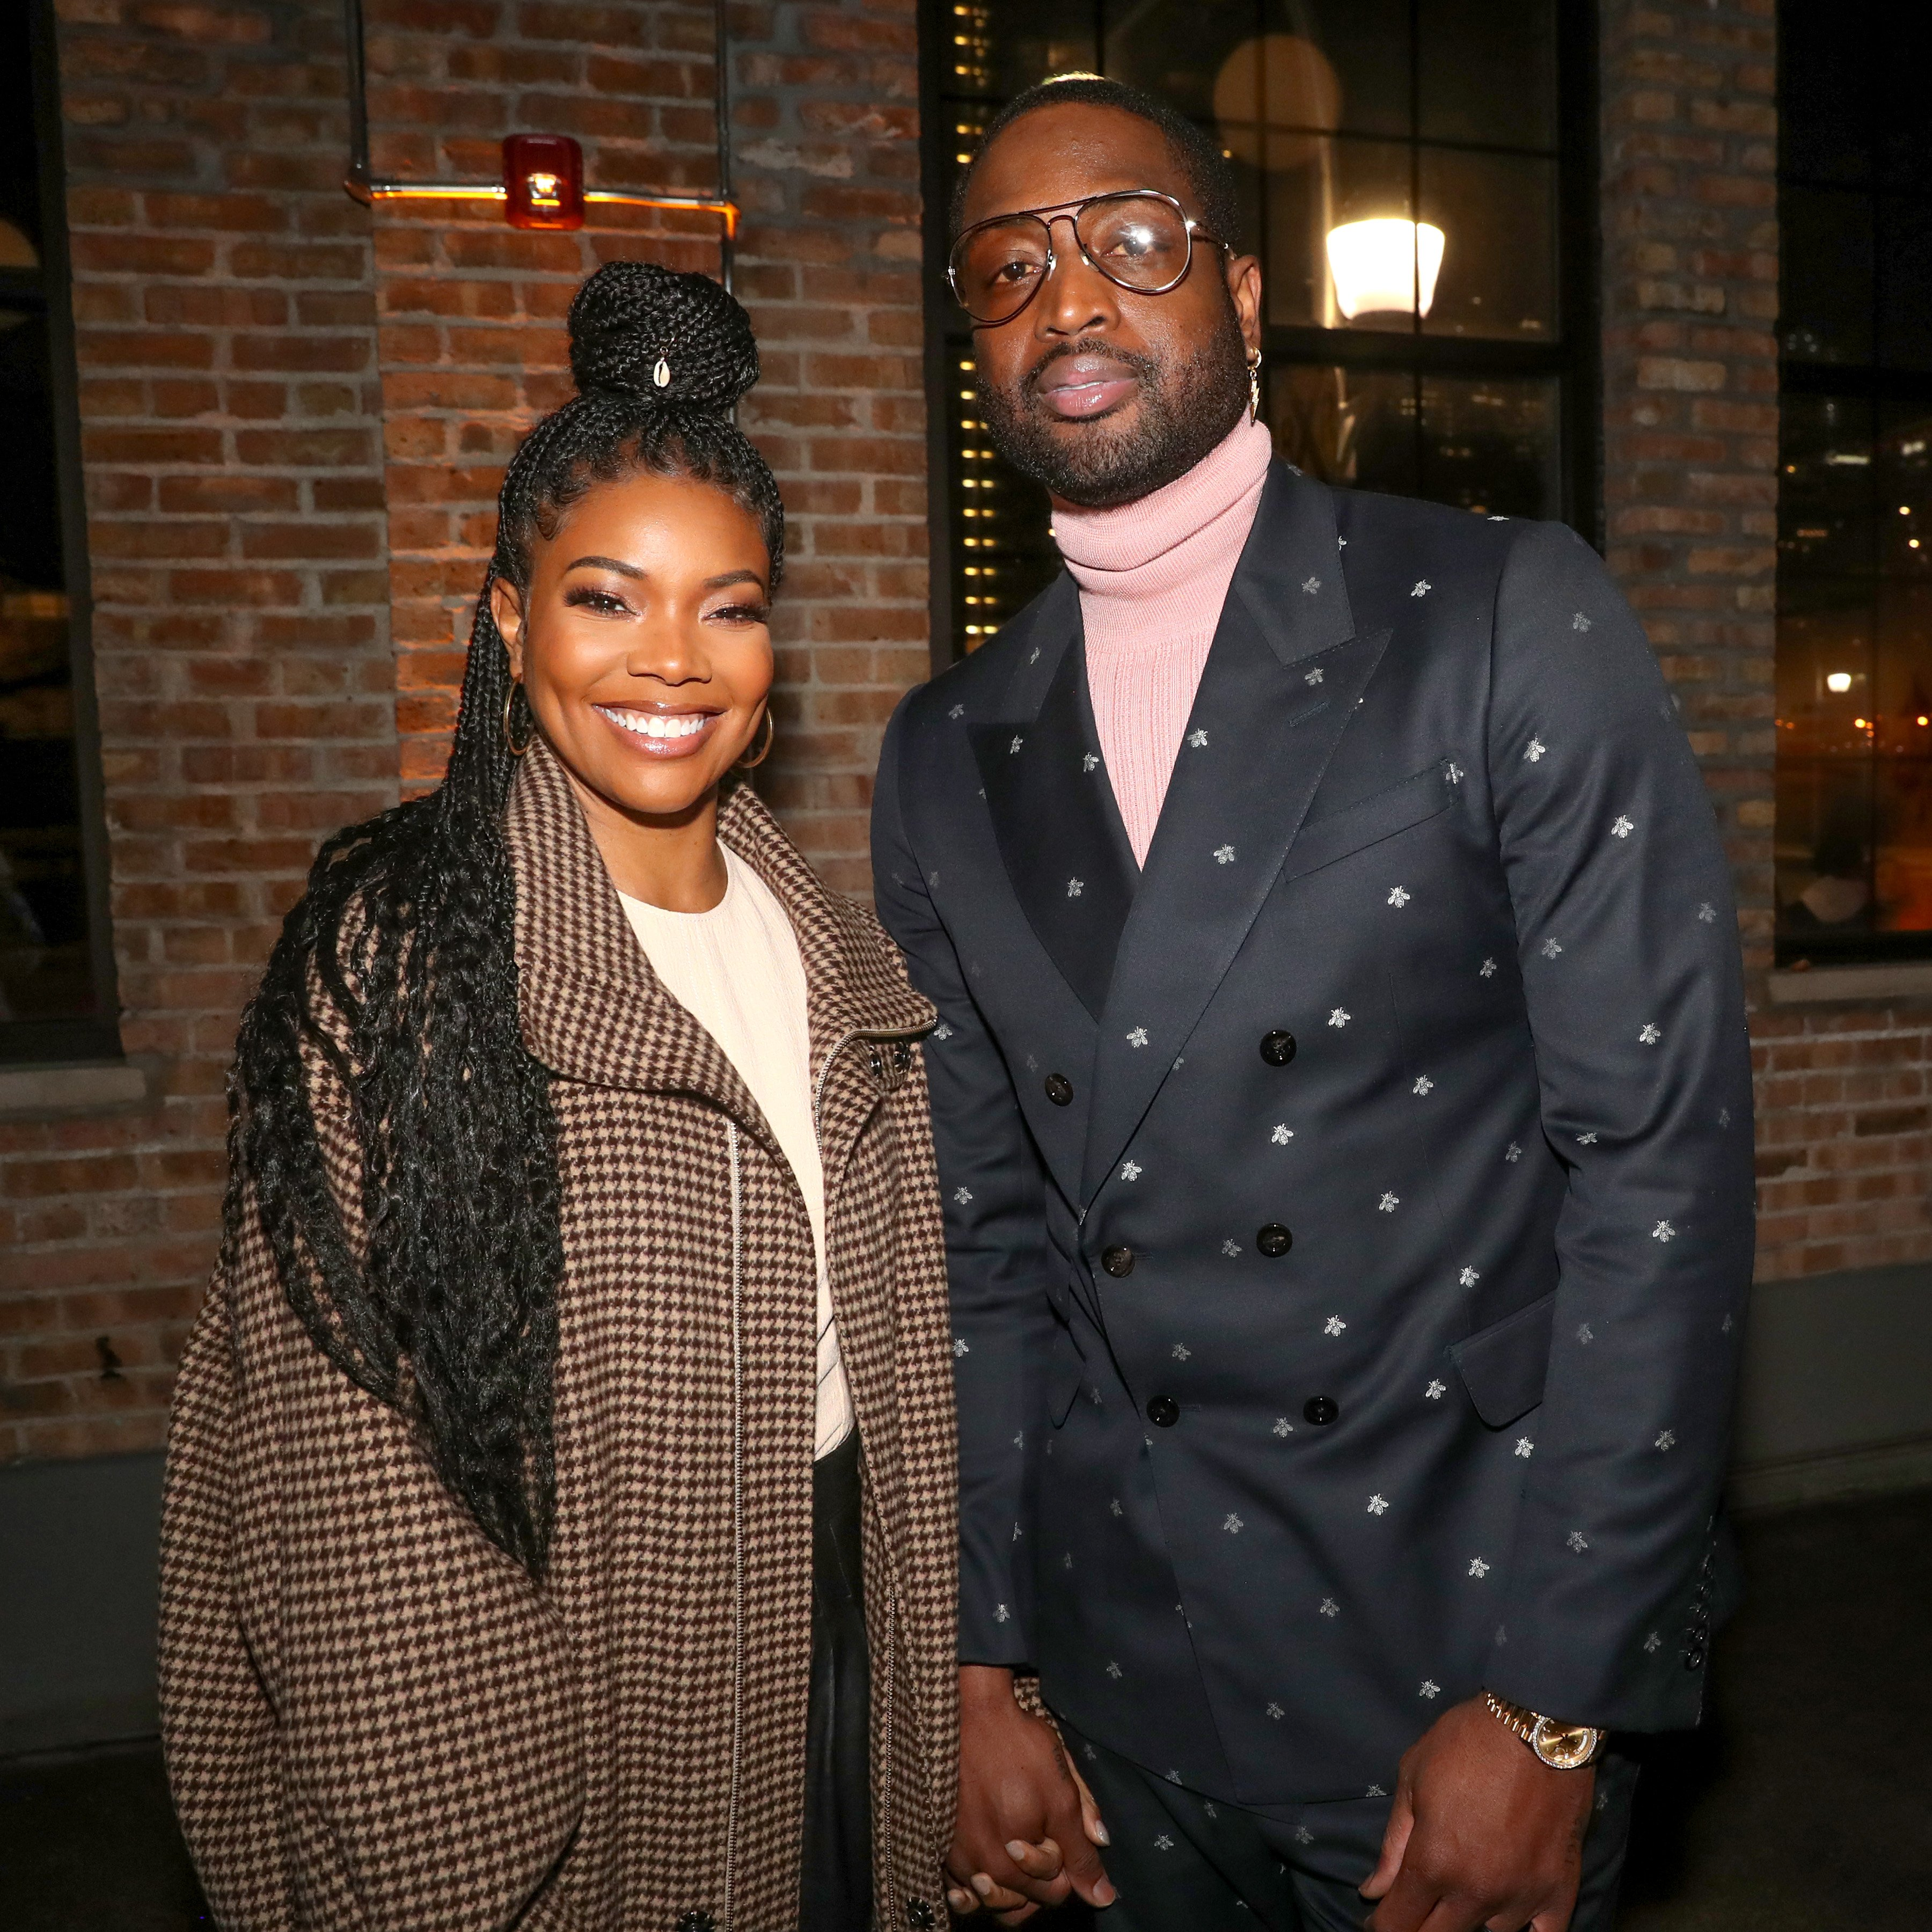 Gabrielle Union and Dwyane Wade attend Stance Spades at NBA All-Star 2020 on February 15, 2020. | Photo: Getty Images